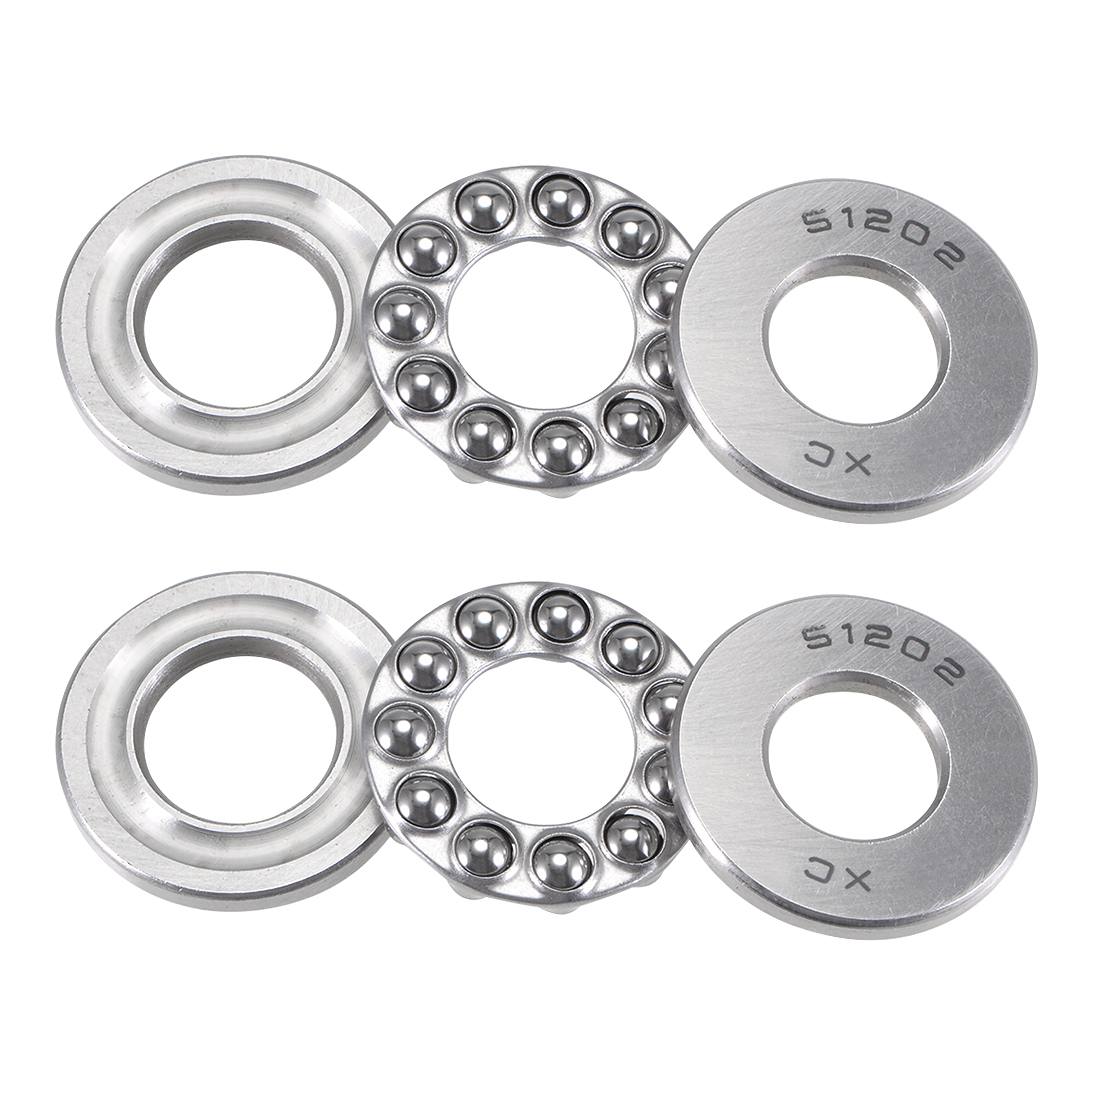 2 Pcs Axial Ball Single Thrust Bearing 32mm x 15mm x 12mm 51202